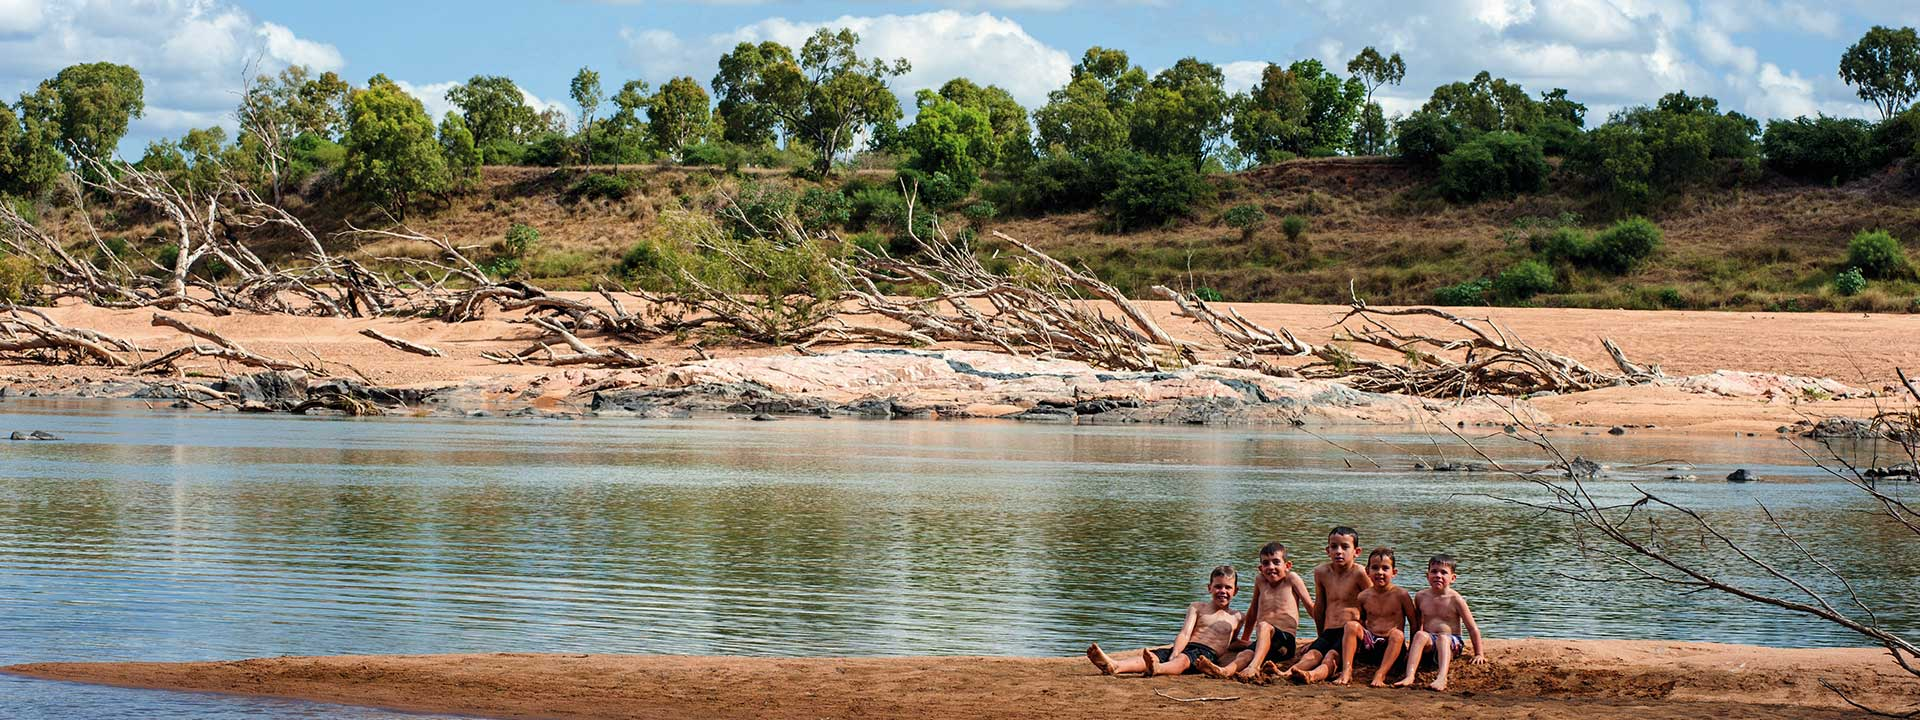 Take a dip in the Burdekin River in Charters Towers